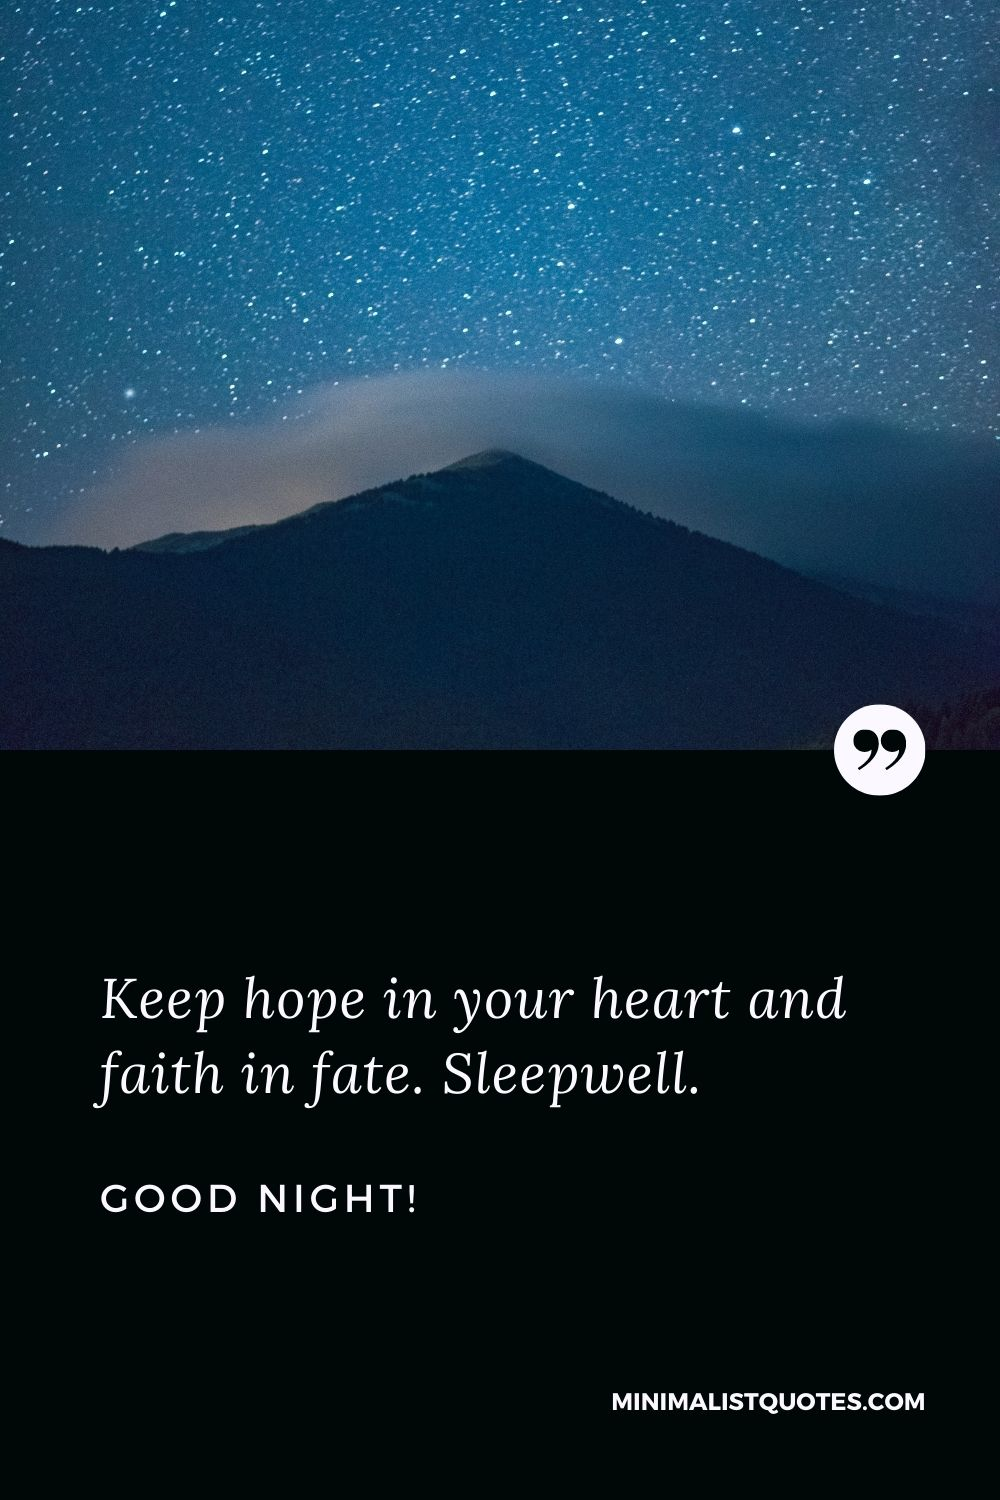 Good Night Wish & Message With Image: Keep hope in your heart and faith in fate. Sleepwell.